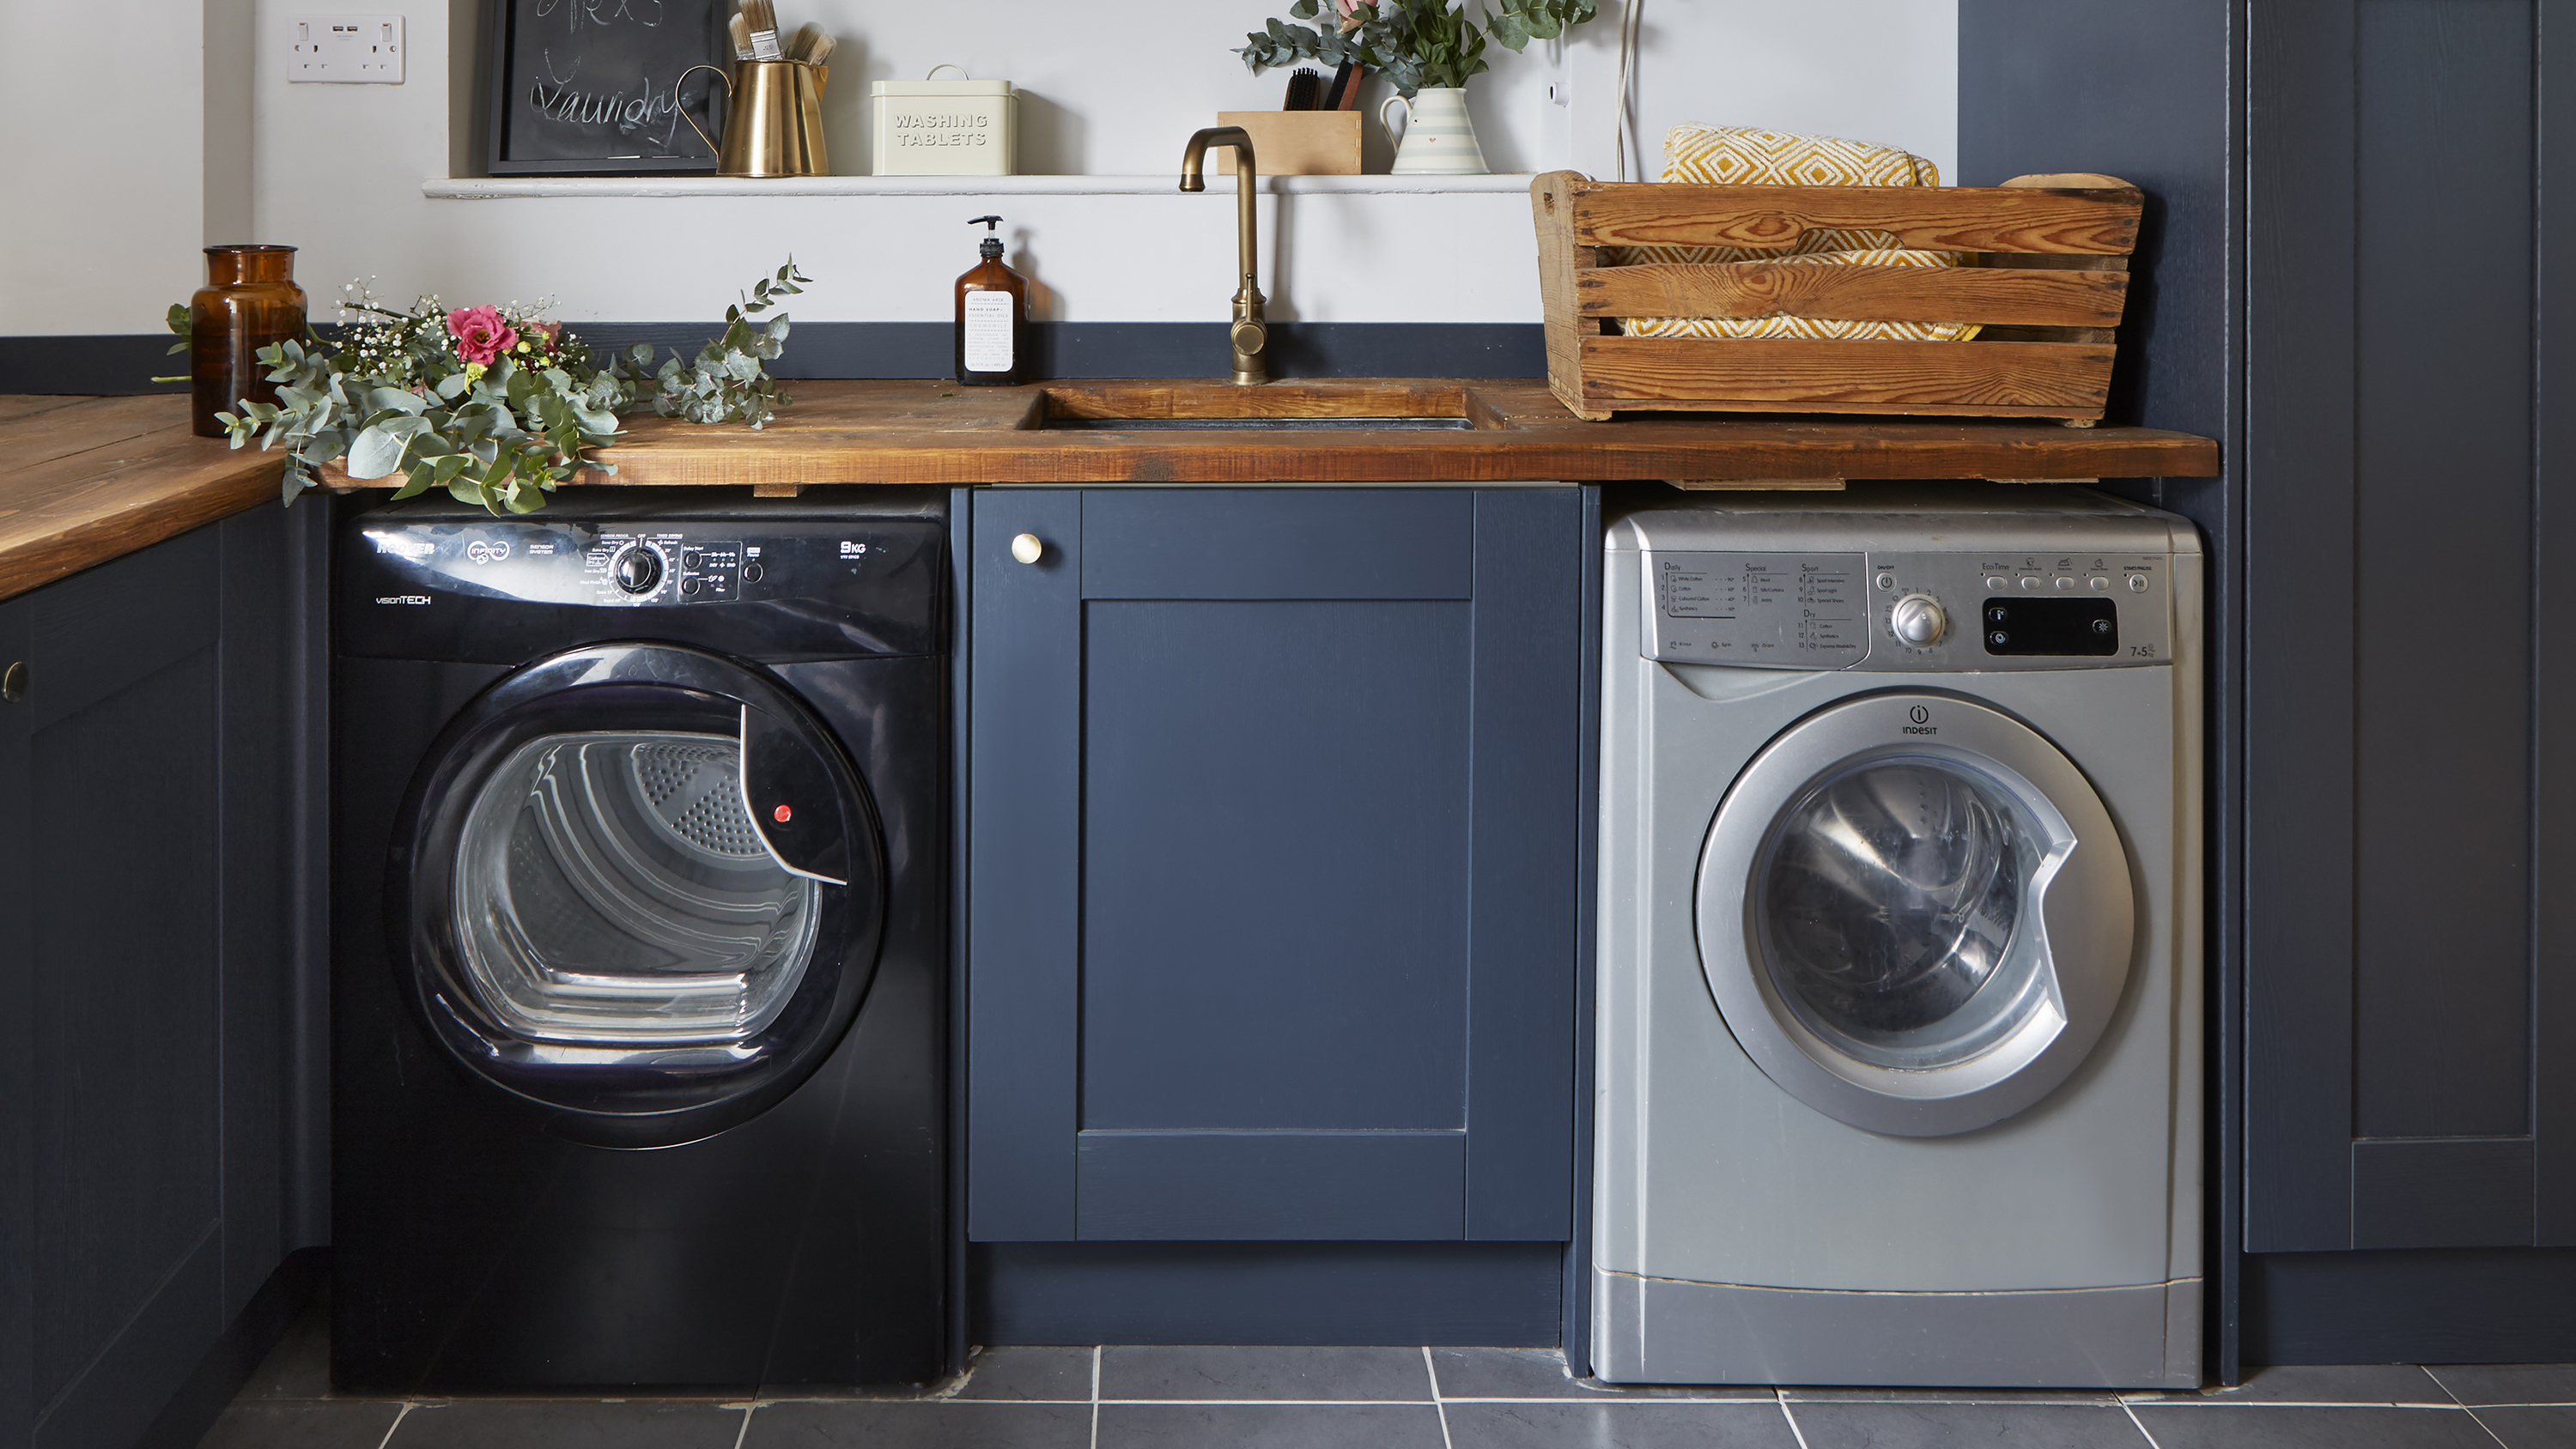 Laundry Room Ideas 15 Clever Ways To Tidy Up Your Utility Real Homes